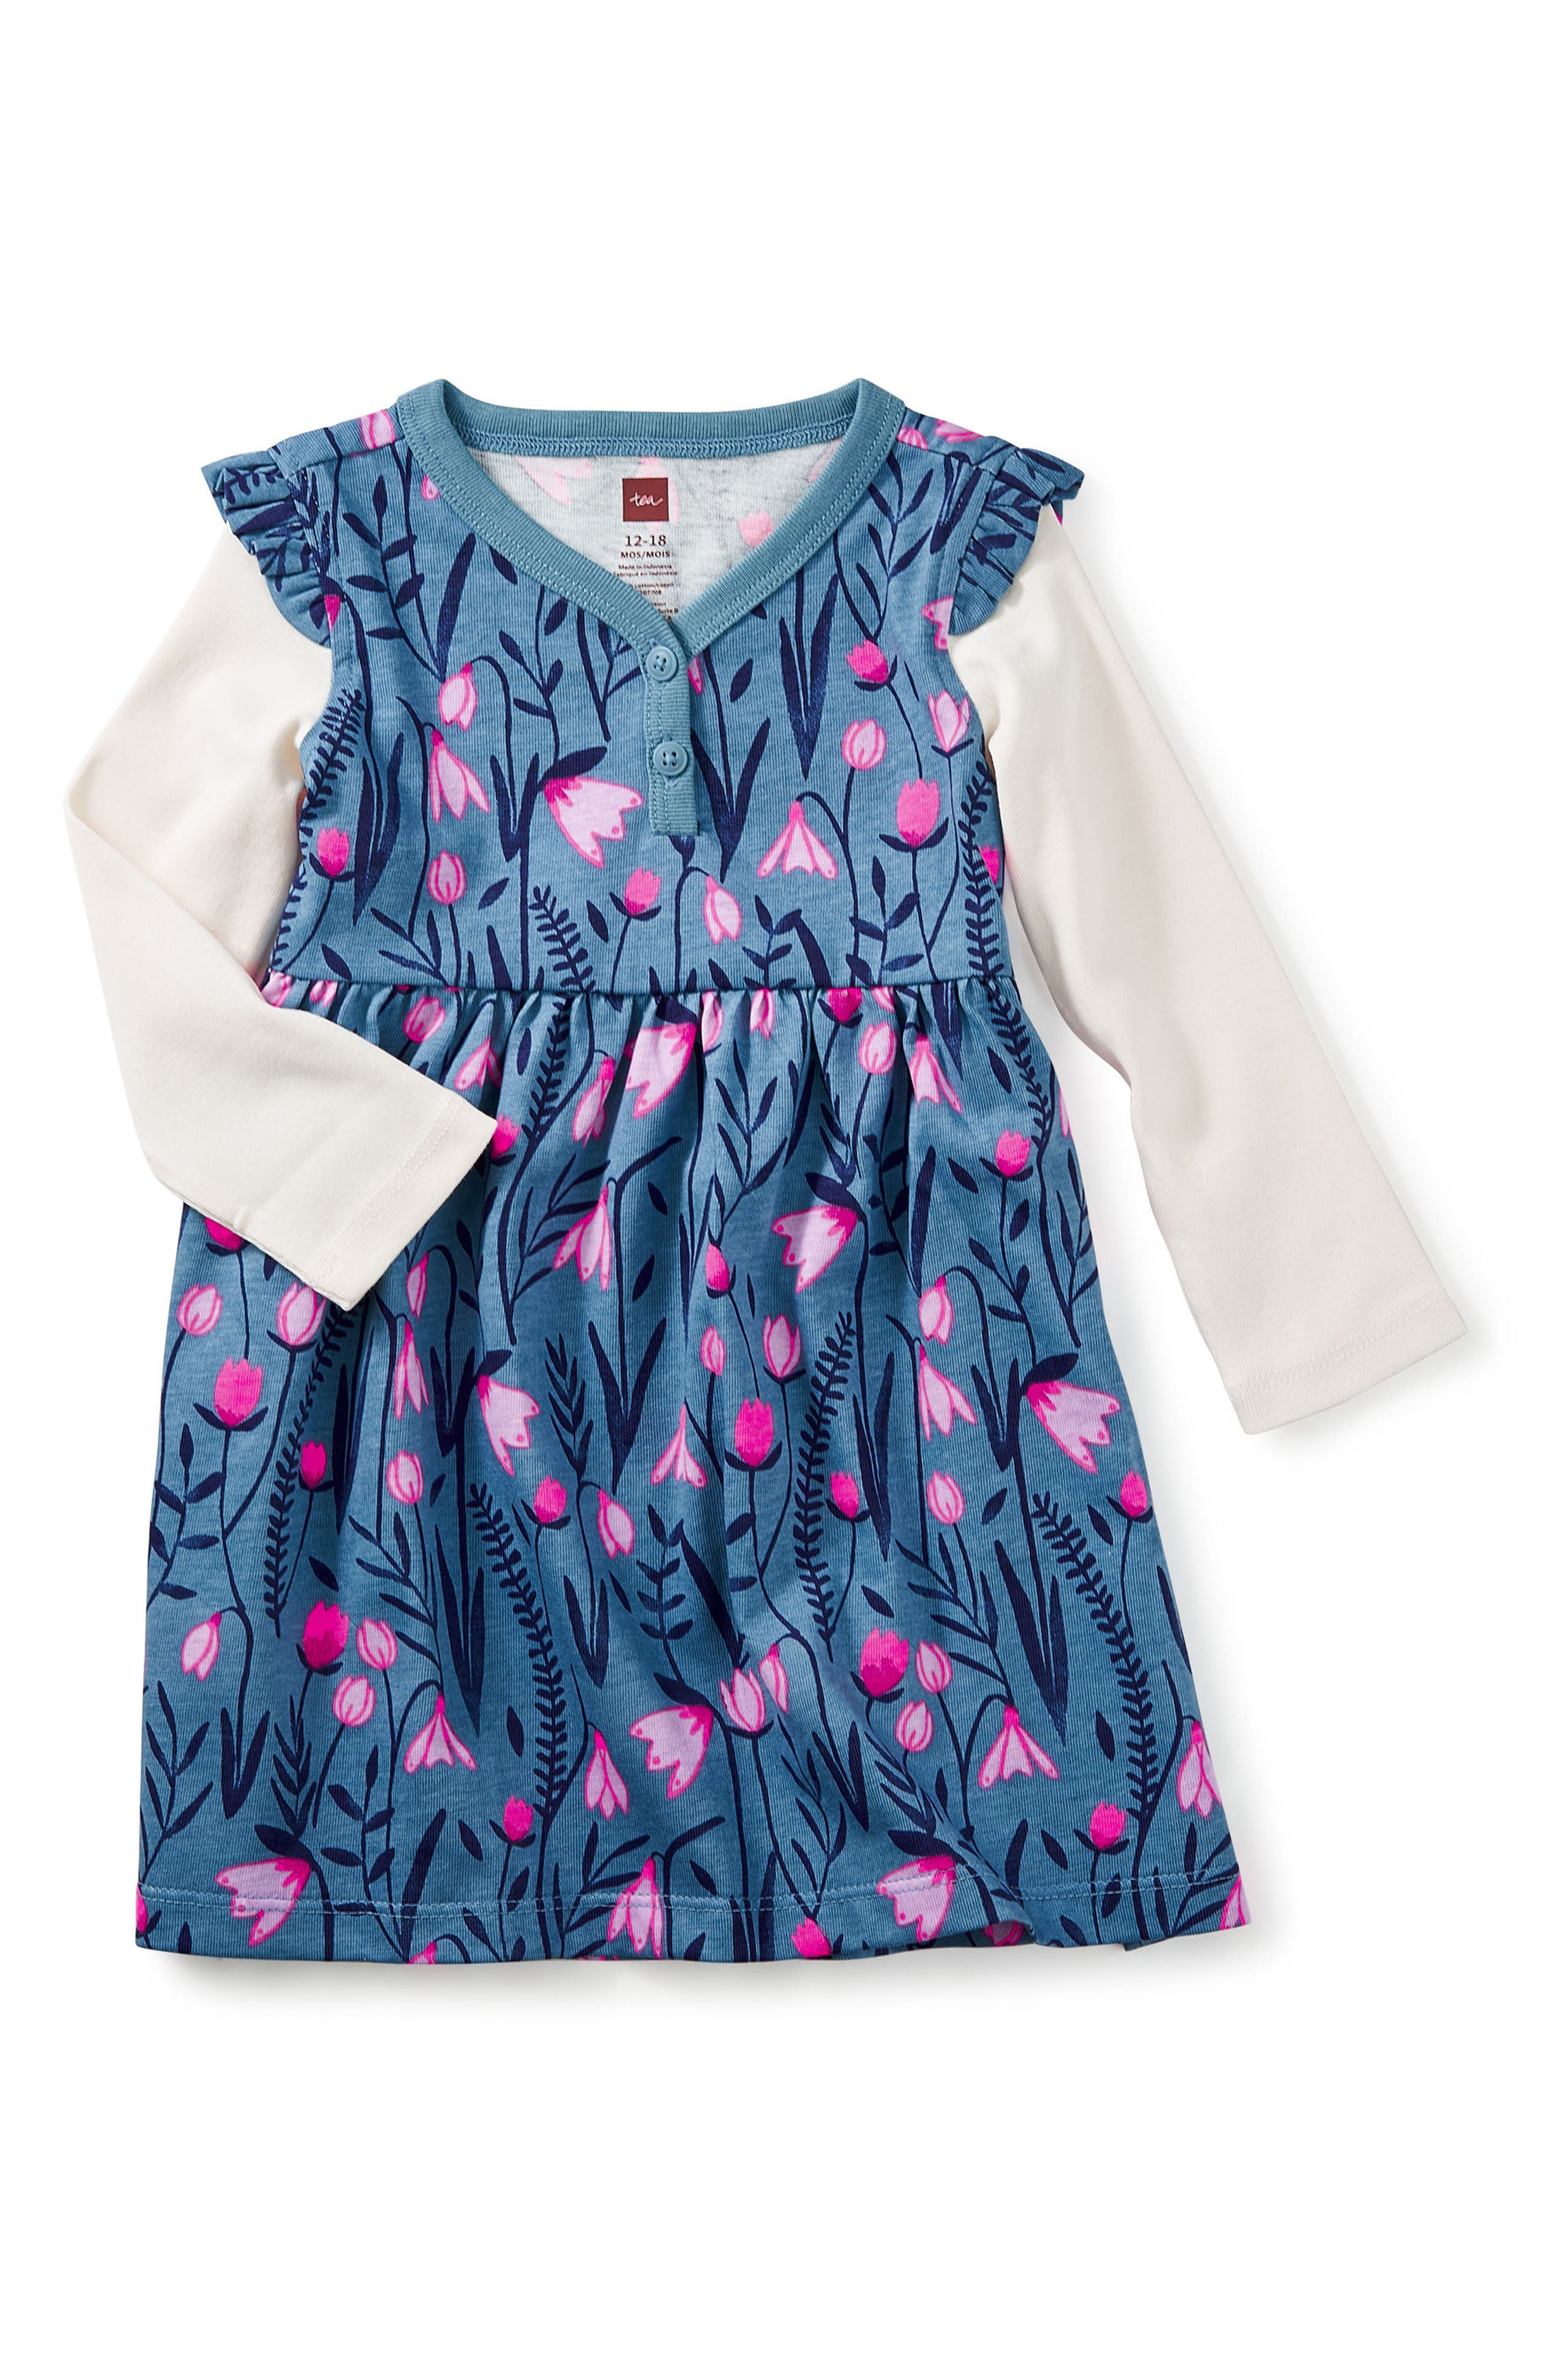 Alternate Image 1 Selected - Tea Collection Snowdrop Layered Dress (Baby Girls)